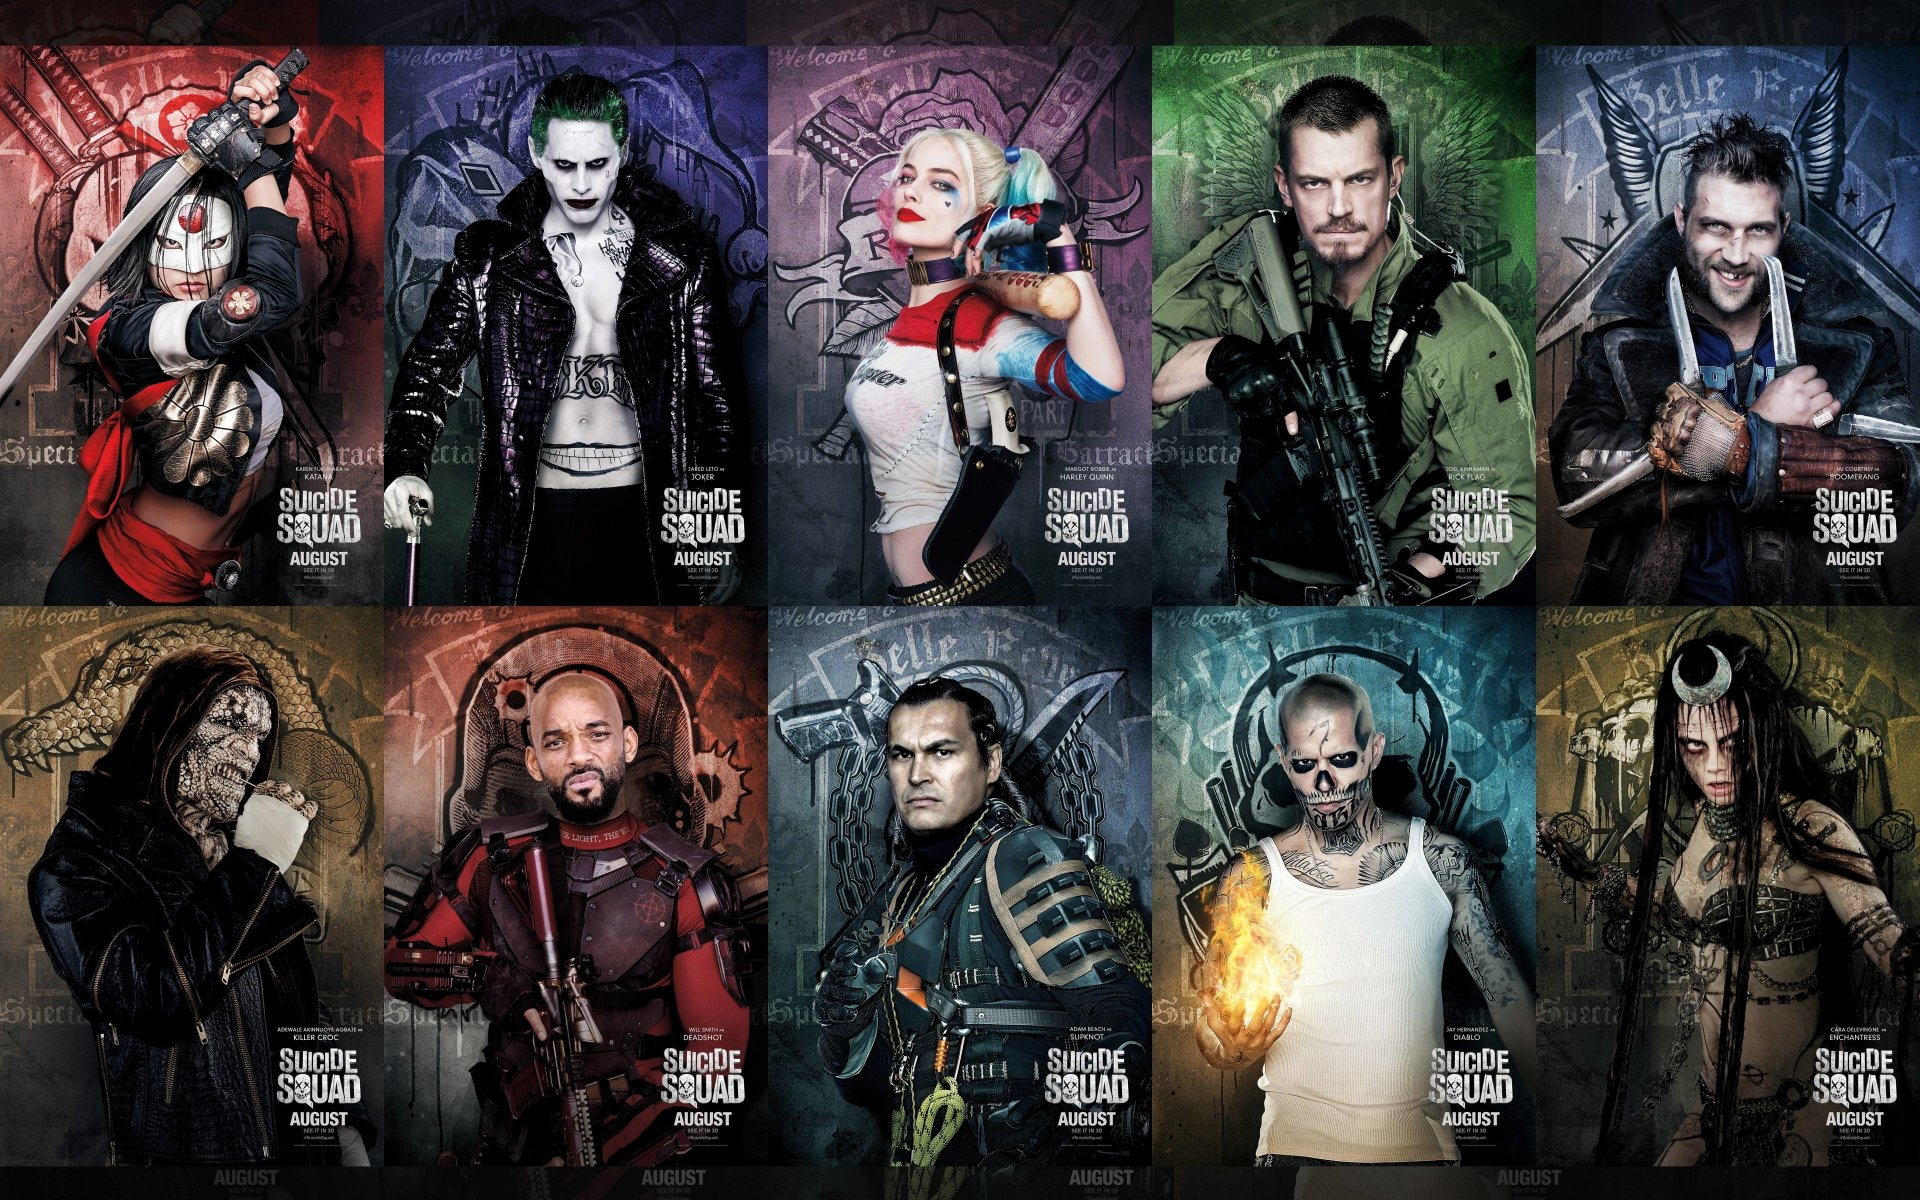 Movie - Suicide Squad  Will Smith Deadshot Margot Robbie Harley Quinn Katana (DC Comics) Karen Fukuhara Joker Jared Leto Joel Kinnaman Rick Flag Jai Courtney Captain Boomerang Adewale Akinnuoye-Agbaje Killer Croc Adam Beach Slipknot (DC Comics) Jay Hernandez El Diablo Cara Delevingne Enchantress (DC Comics) Wallpaper